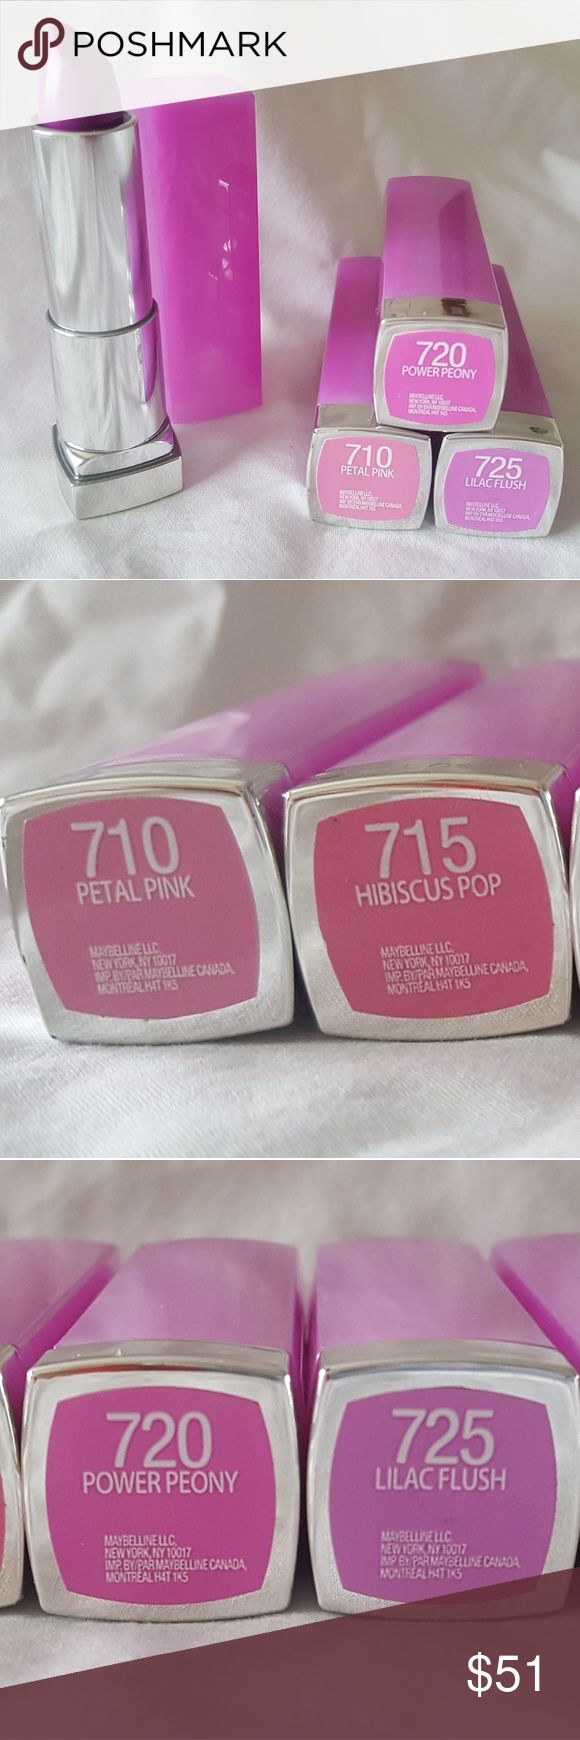 Maybelline New Nouveau Lipstick Maybelline New Nouveau Lipstick  Only $3 each from a regular price of $6.49 Different shades available:  710, 715, 720, 725, 730, 745 Maybelline Makeup Lipstick